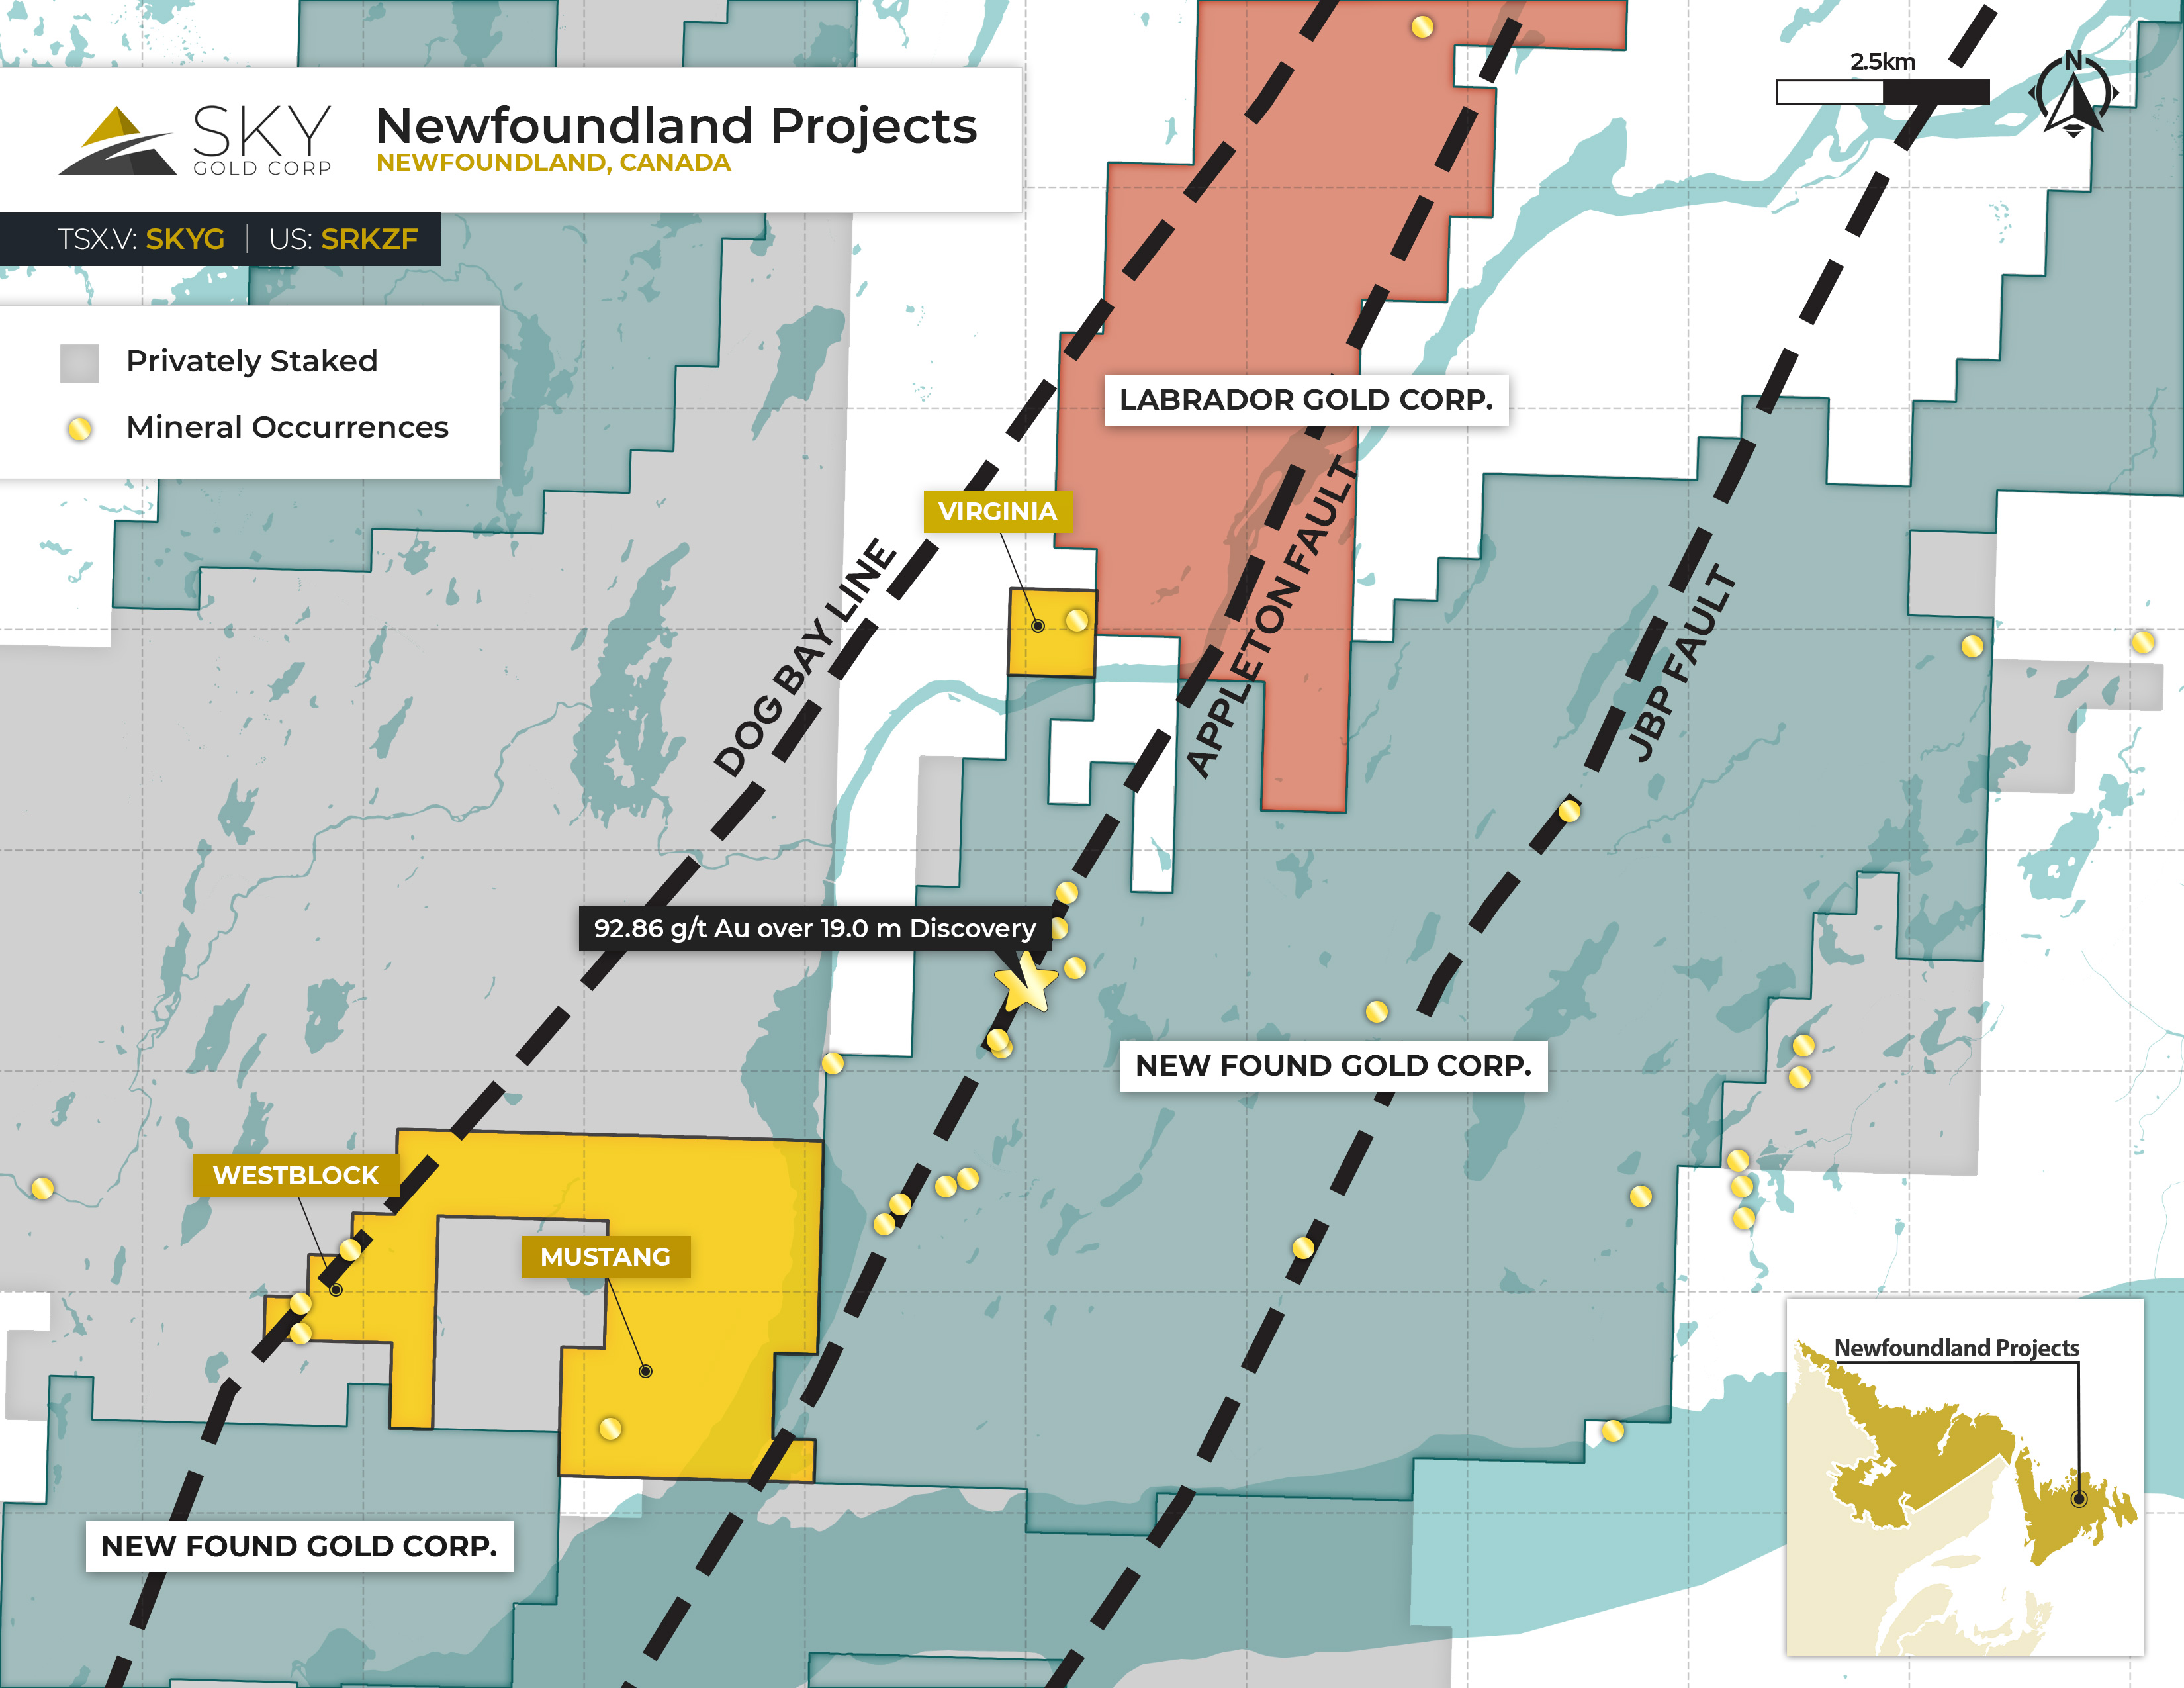 Location map of Sky Gold Corp.'s Newfoundland Projects